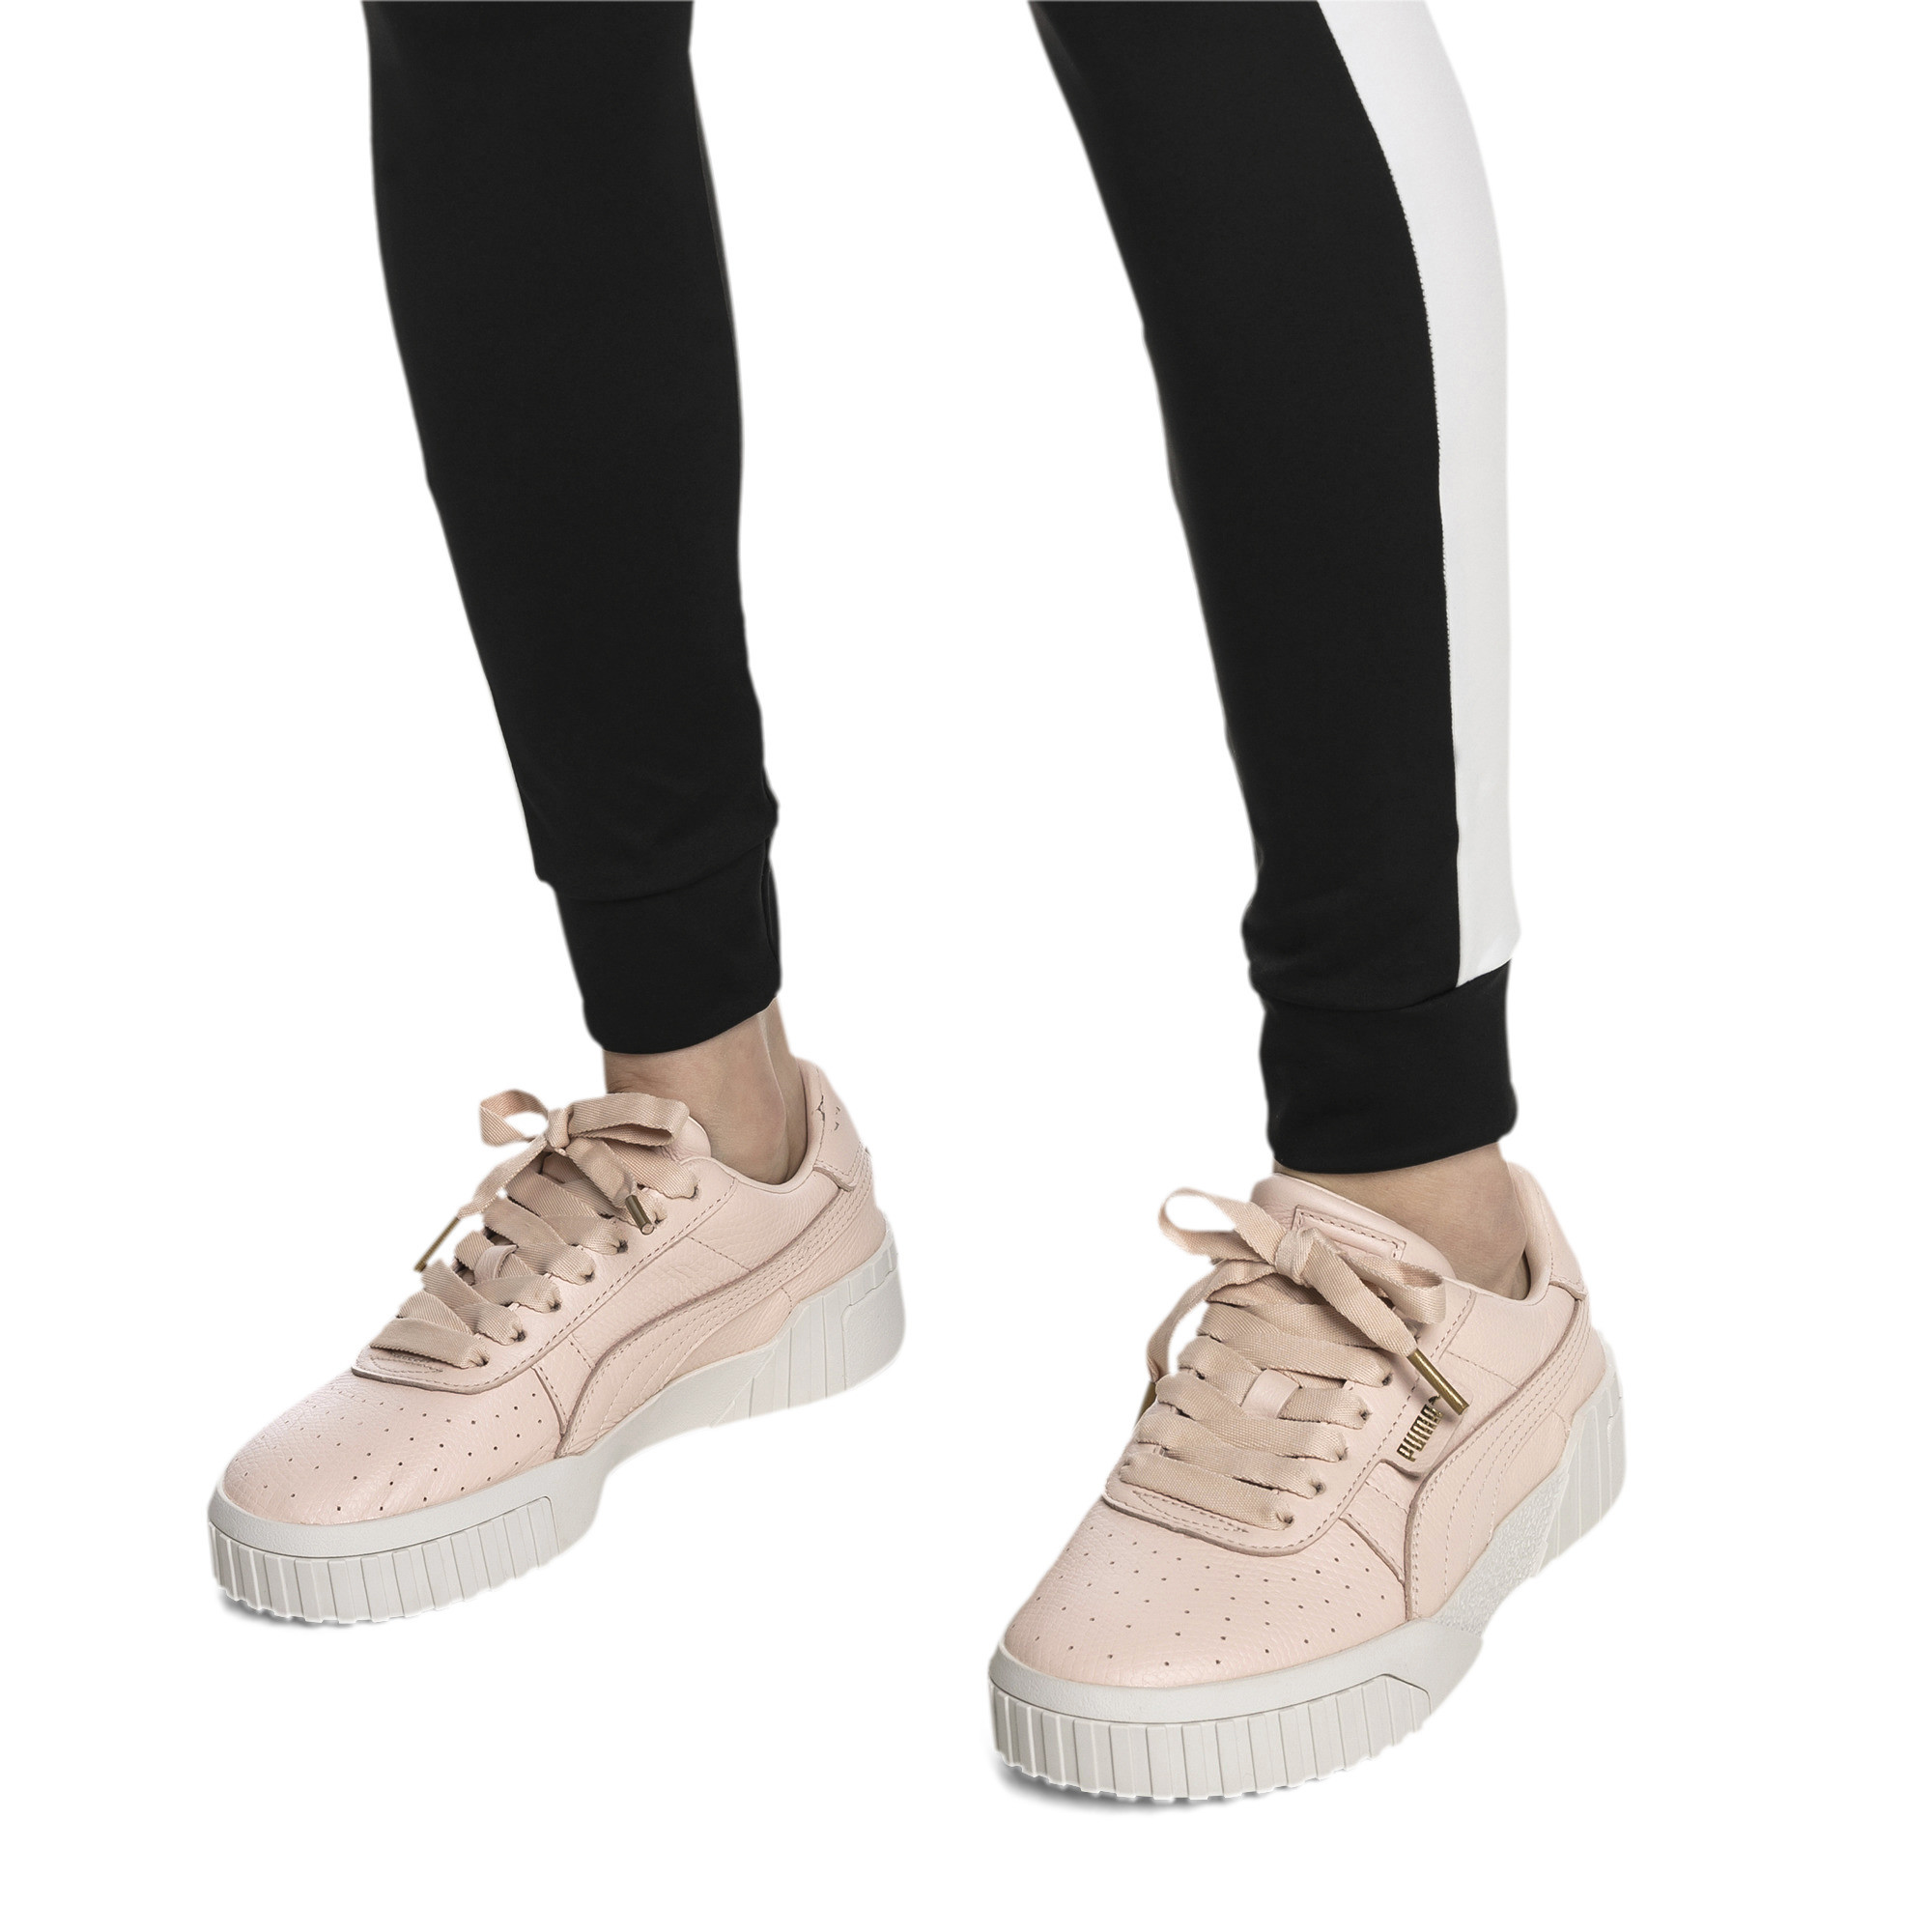 PUMA-Cali-Emboss-Women-039-s-Sneakers-Women-Shoe-Evolution thumbnail 12